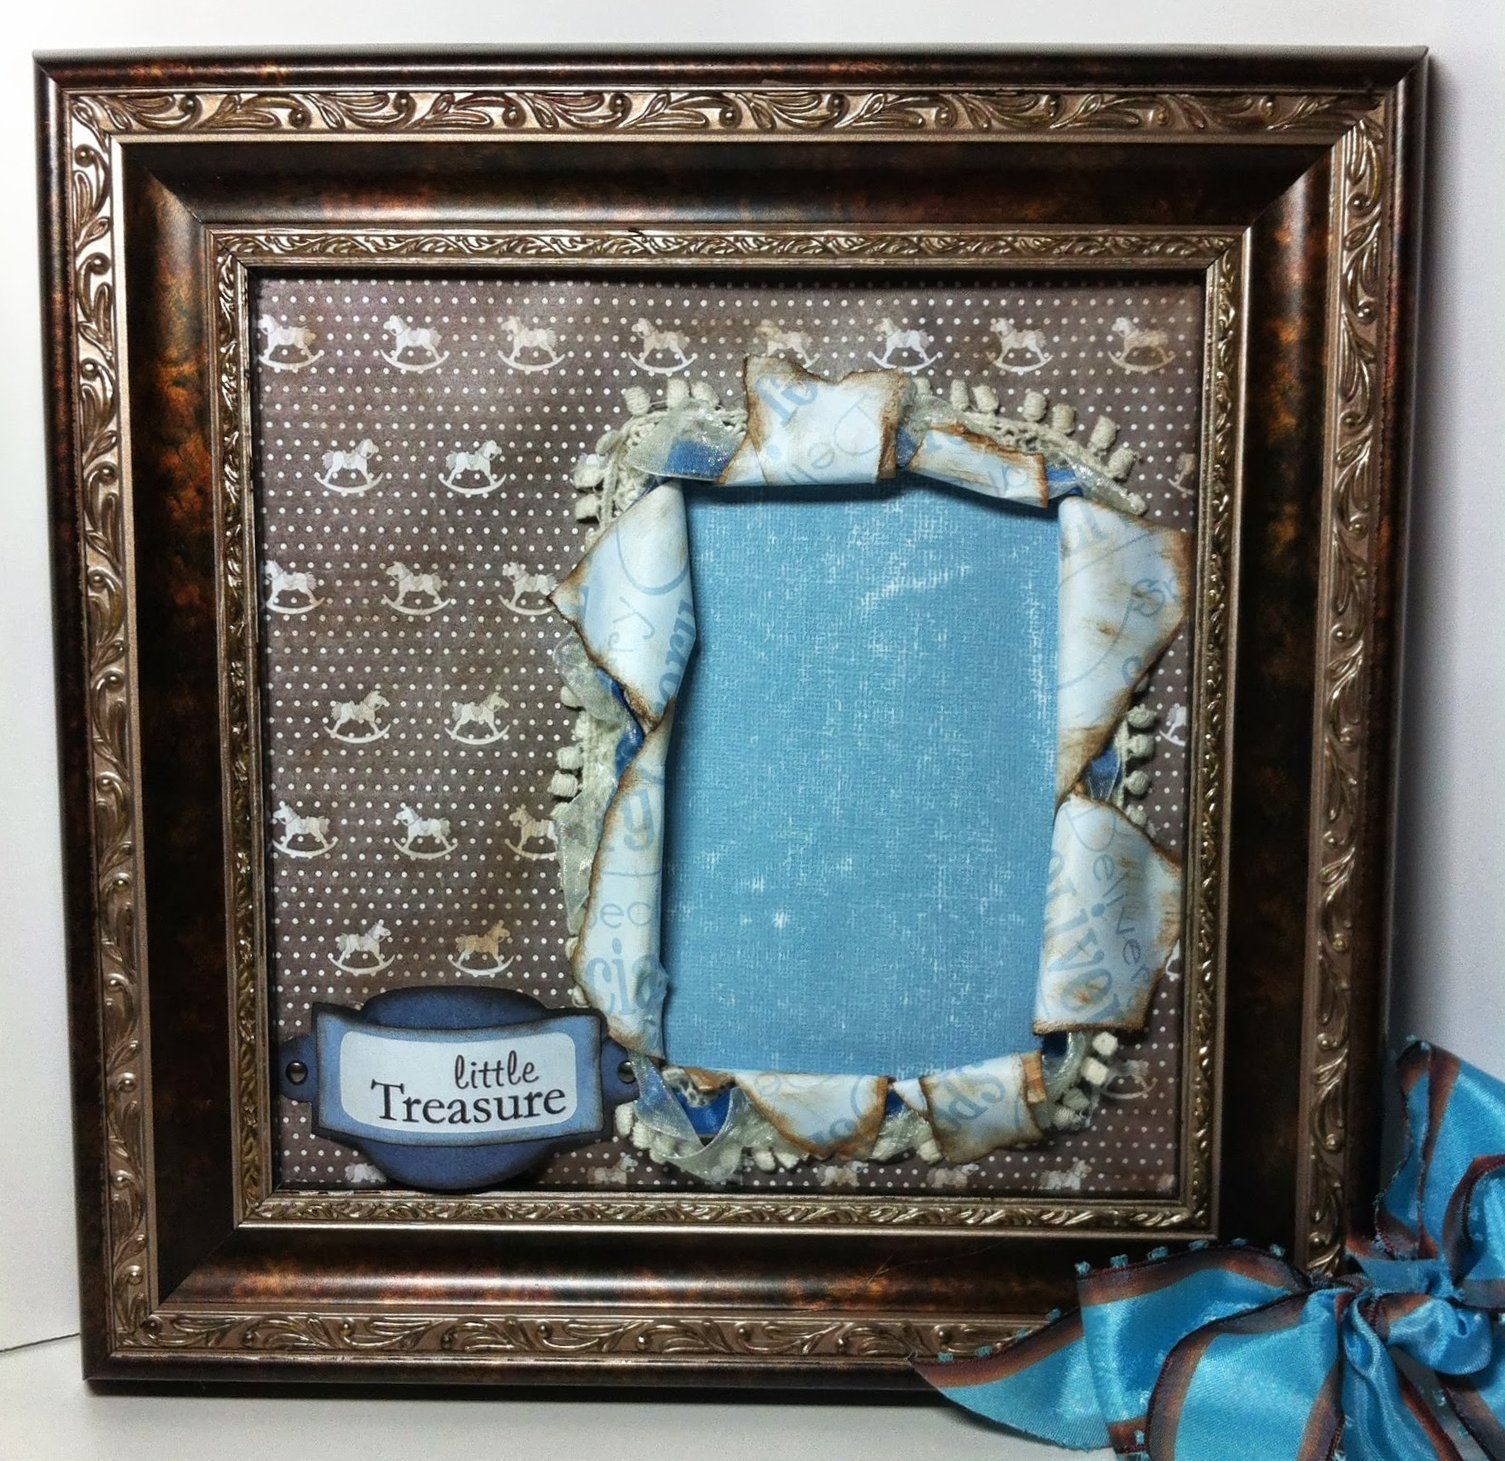 Wendy Cusky is creating super cute scrapbook pages and putting them in frames, love it! www.chatteringrobins.blogspot.com #scrapbooking #scrapbook #frame #specialdelivery #babyboy #rockinghorse #robinsnestscrap